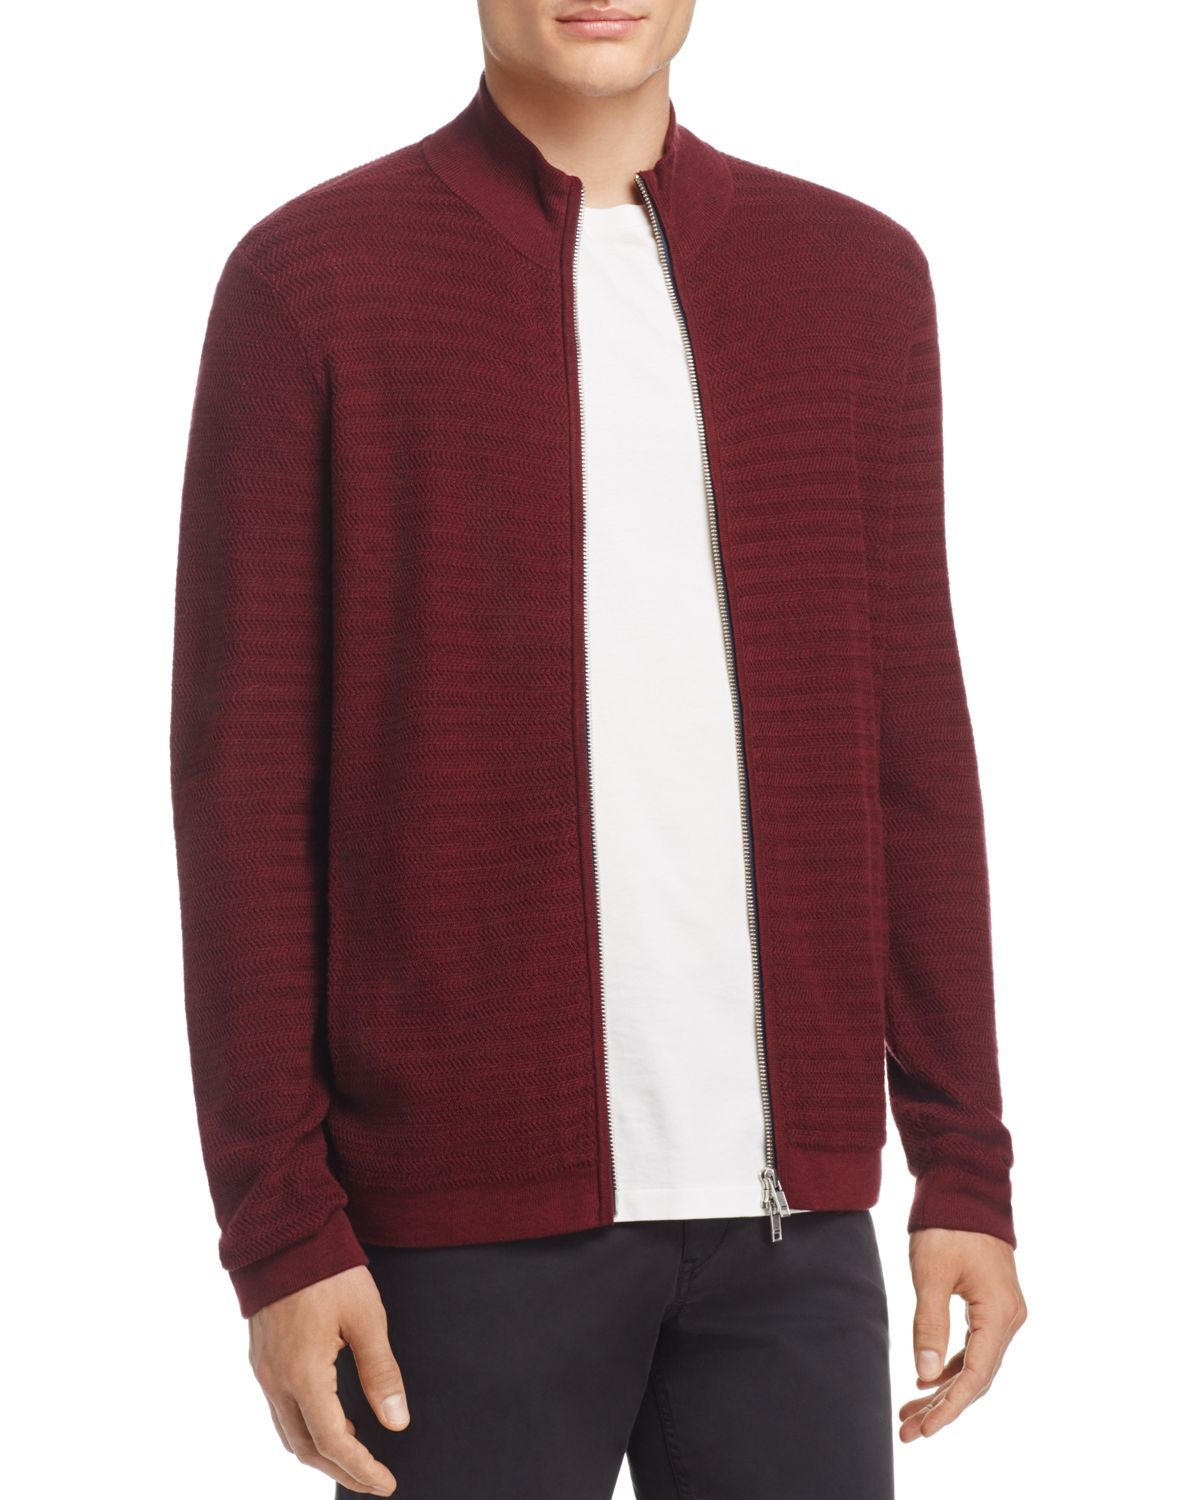 Avell Breach Herringbone Zip Cardigan   100 Percents Exclusive by Theory